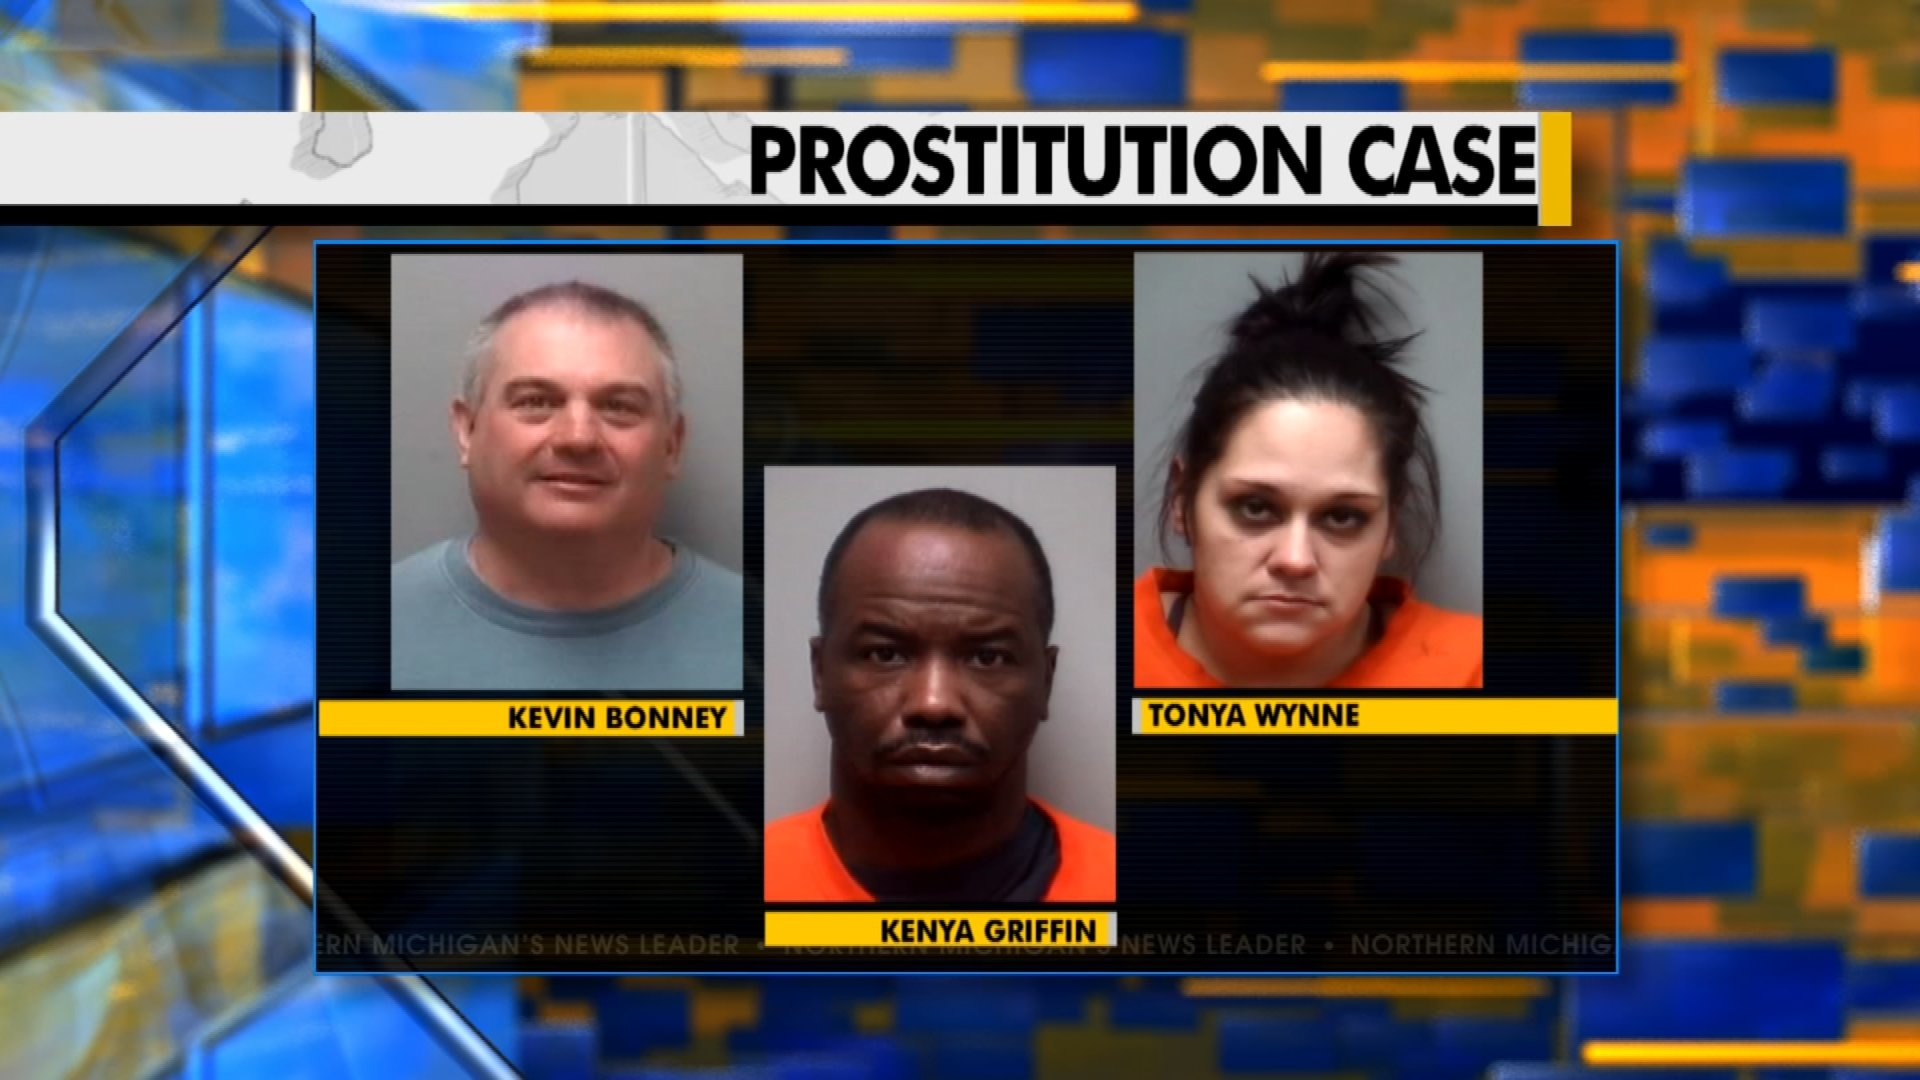 More Arrests Made in Prostitution Ring Bust in Benzie County